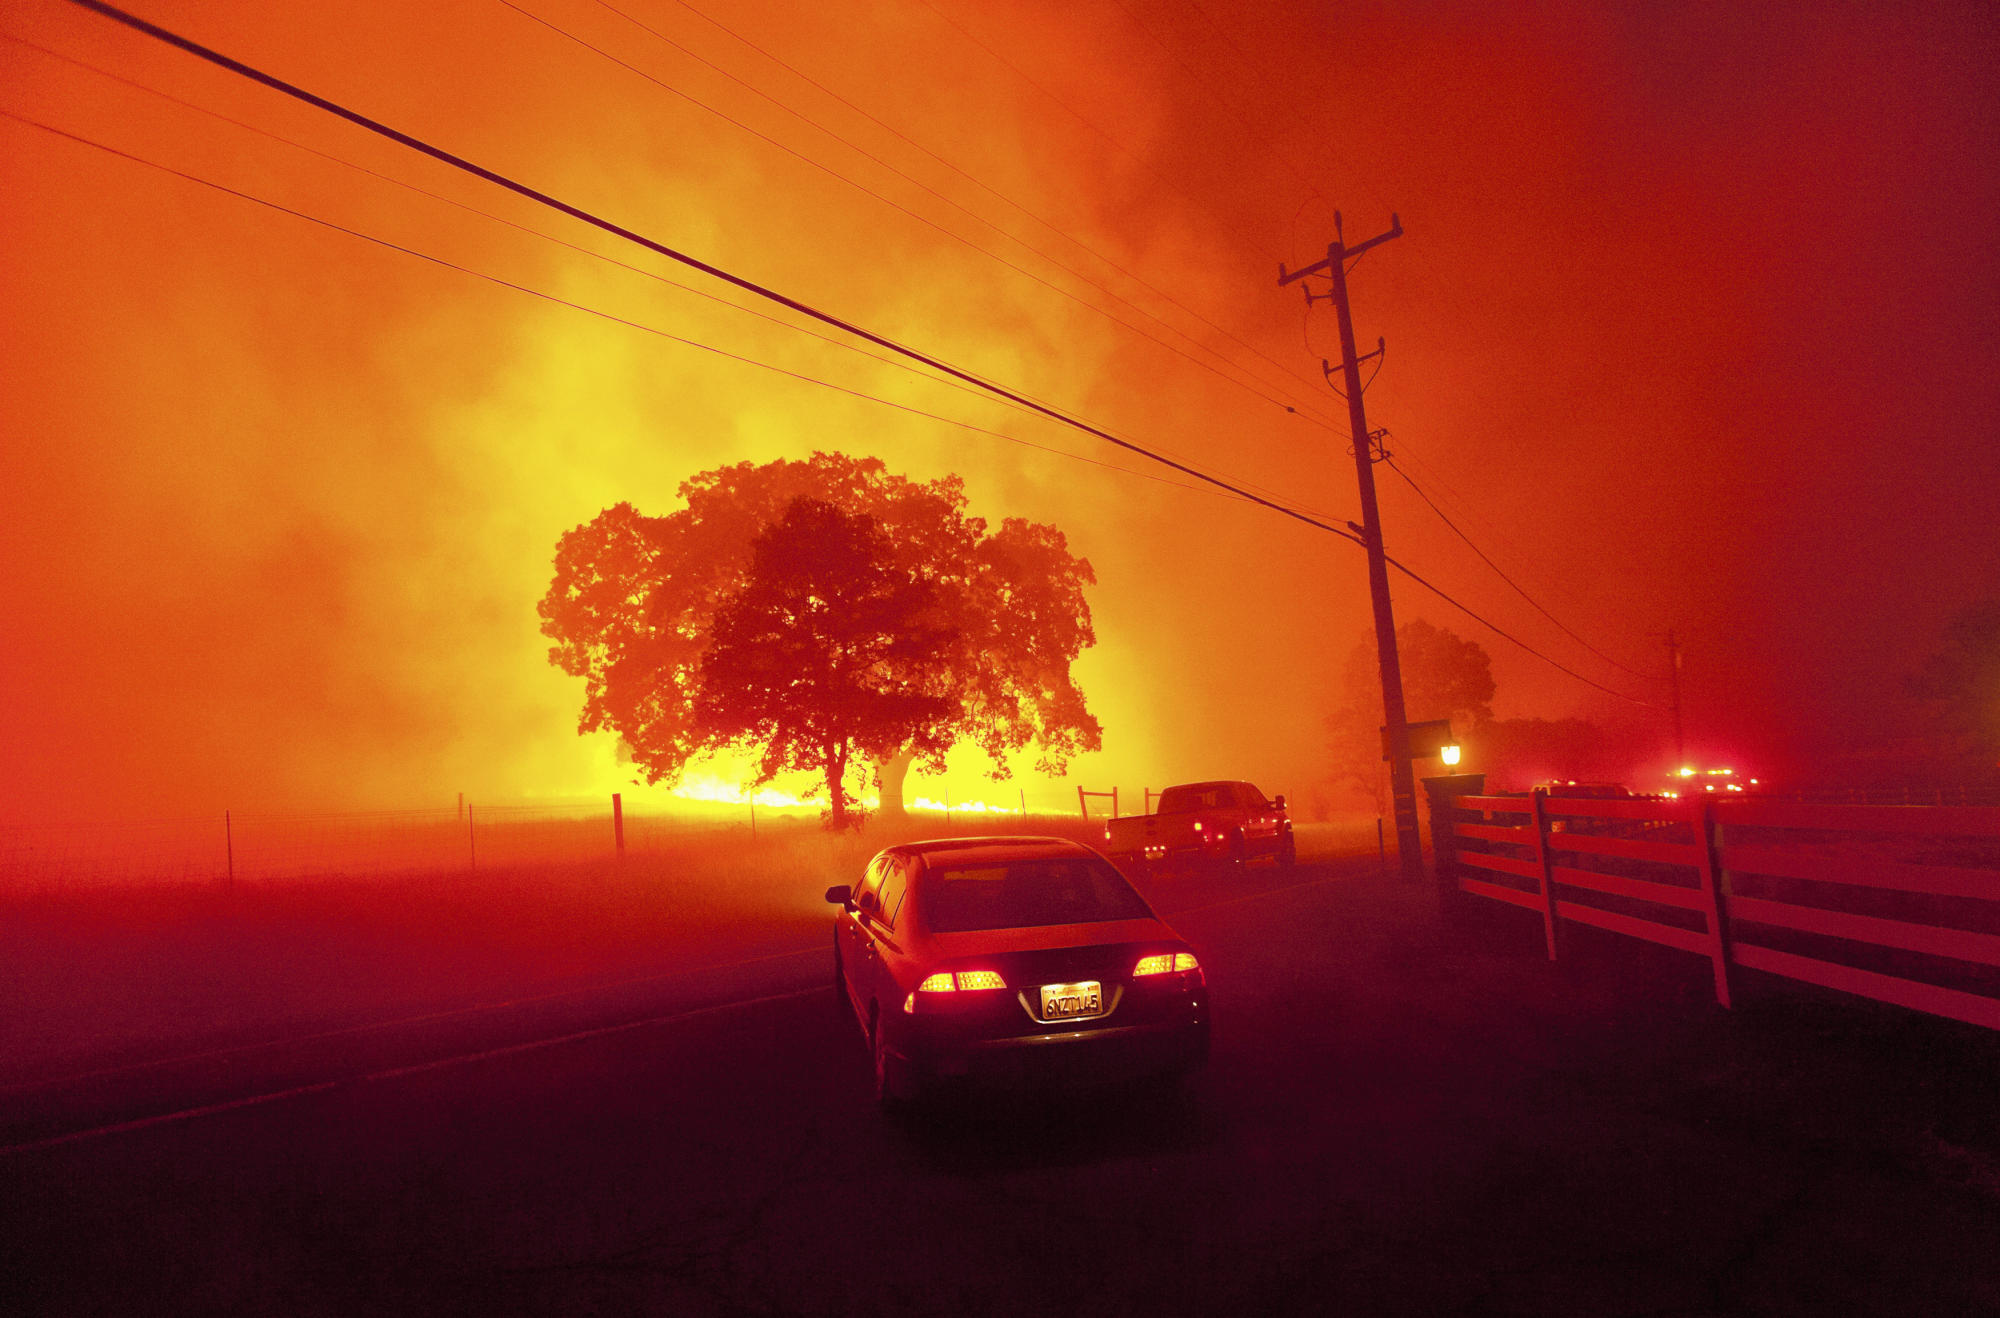 Climate change will be disastrous even after latest world pledges, report finds